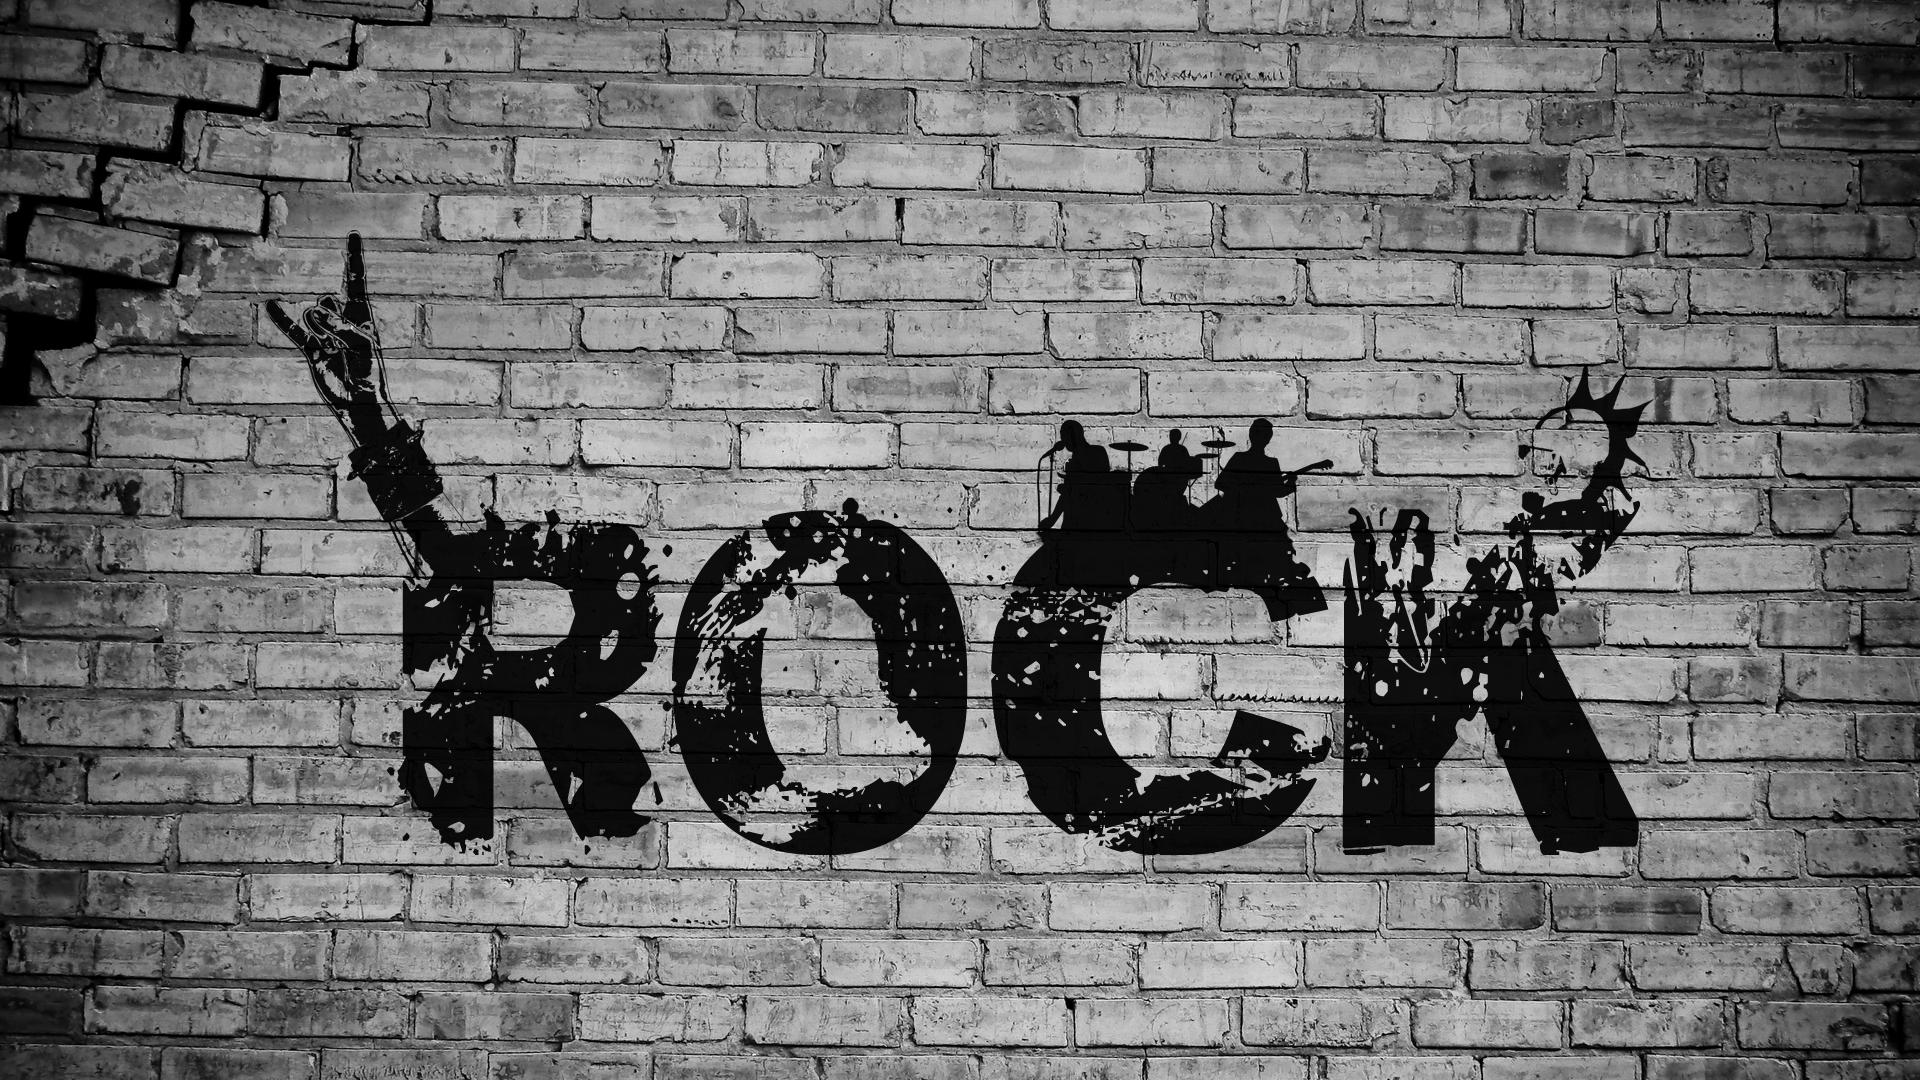 Wallpaper Of Rock